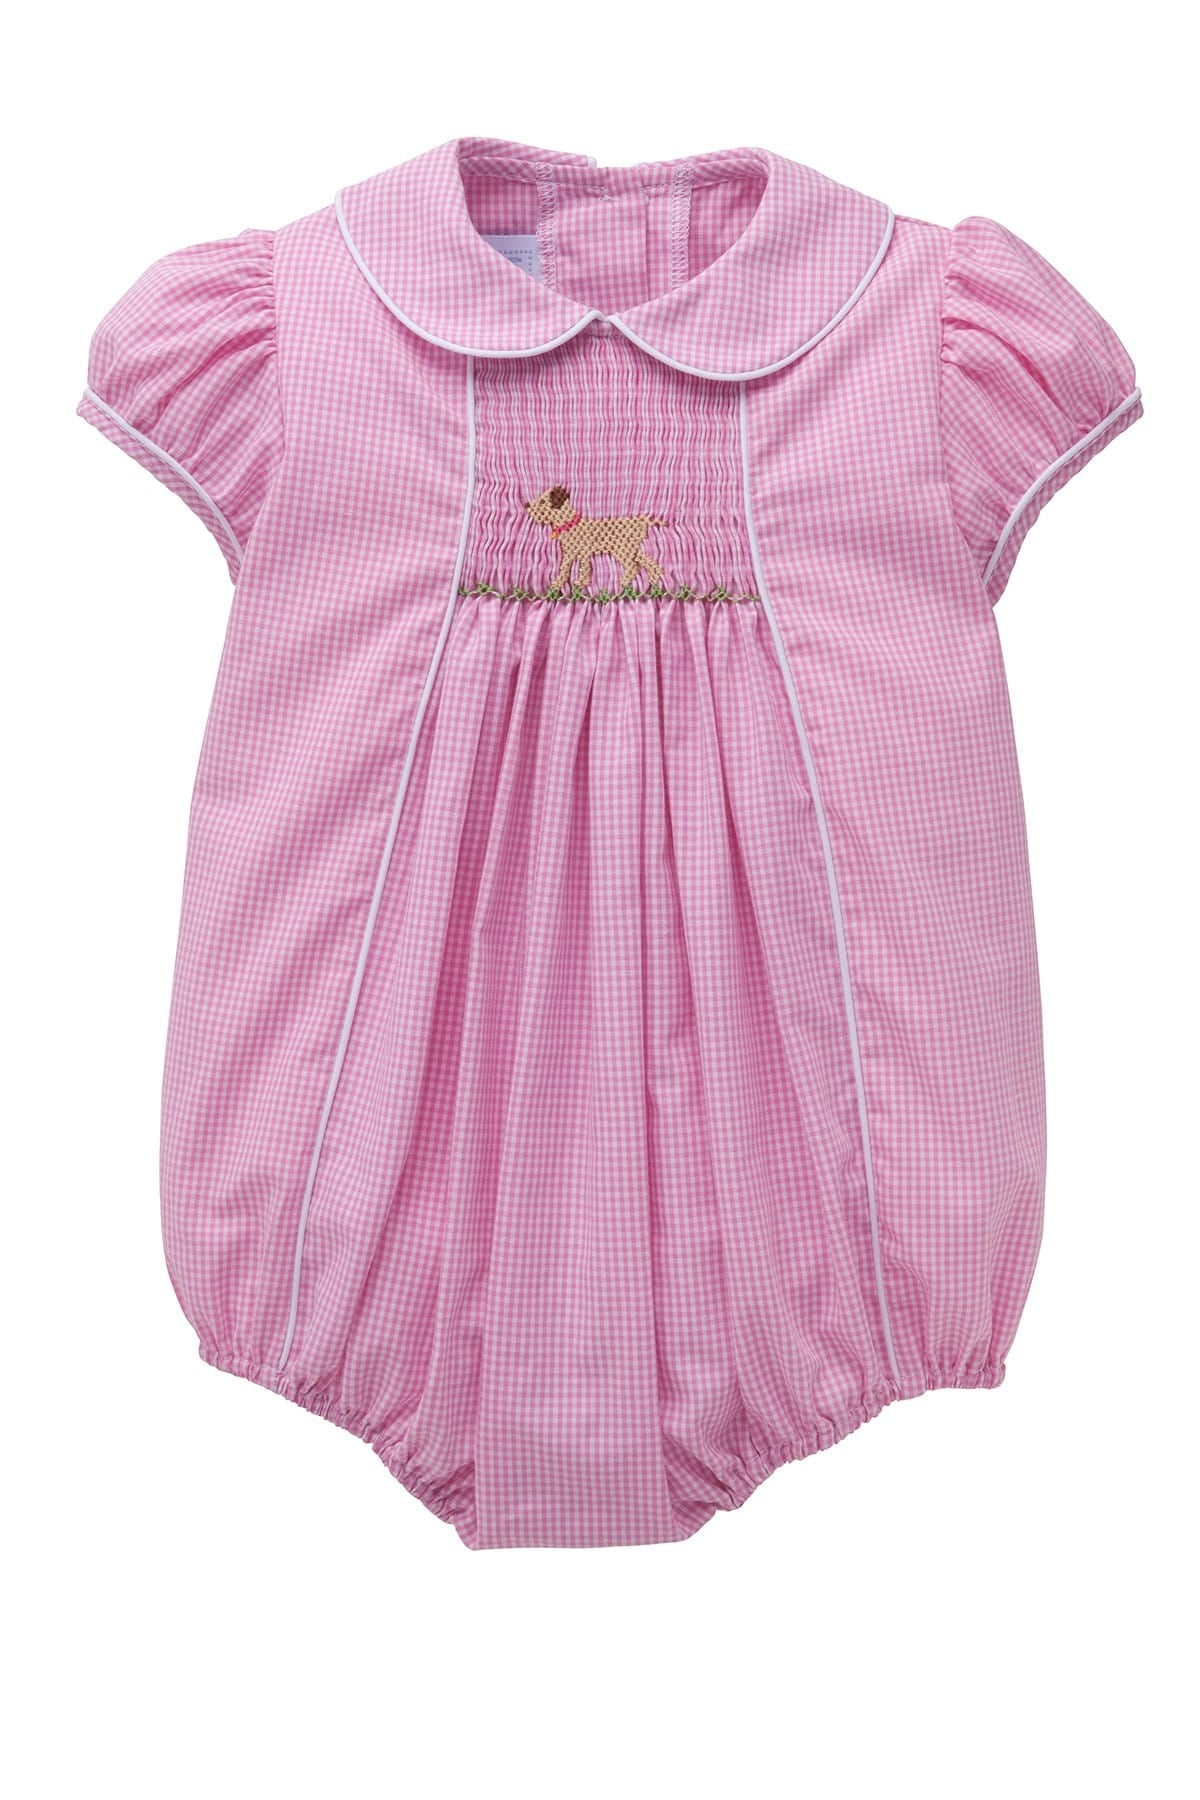 Lab Chest Smocked Bubble, Little English Traditional Children's Clothing, girl's classic pink gingham bubble